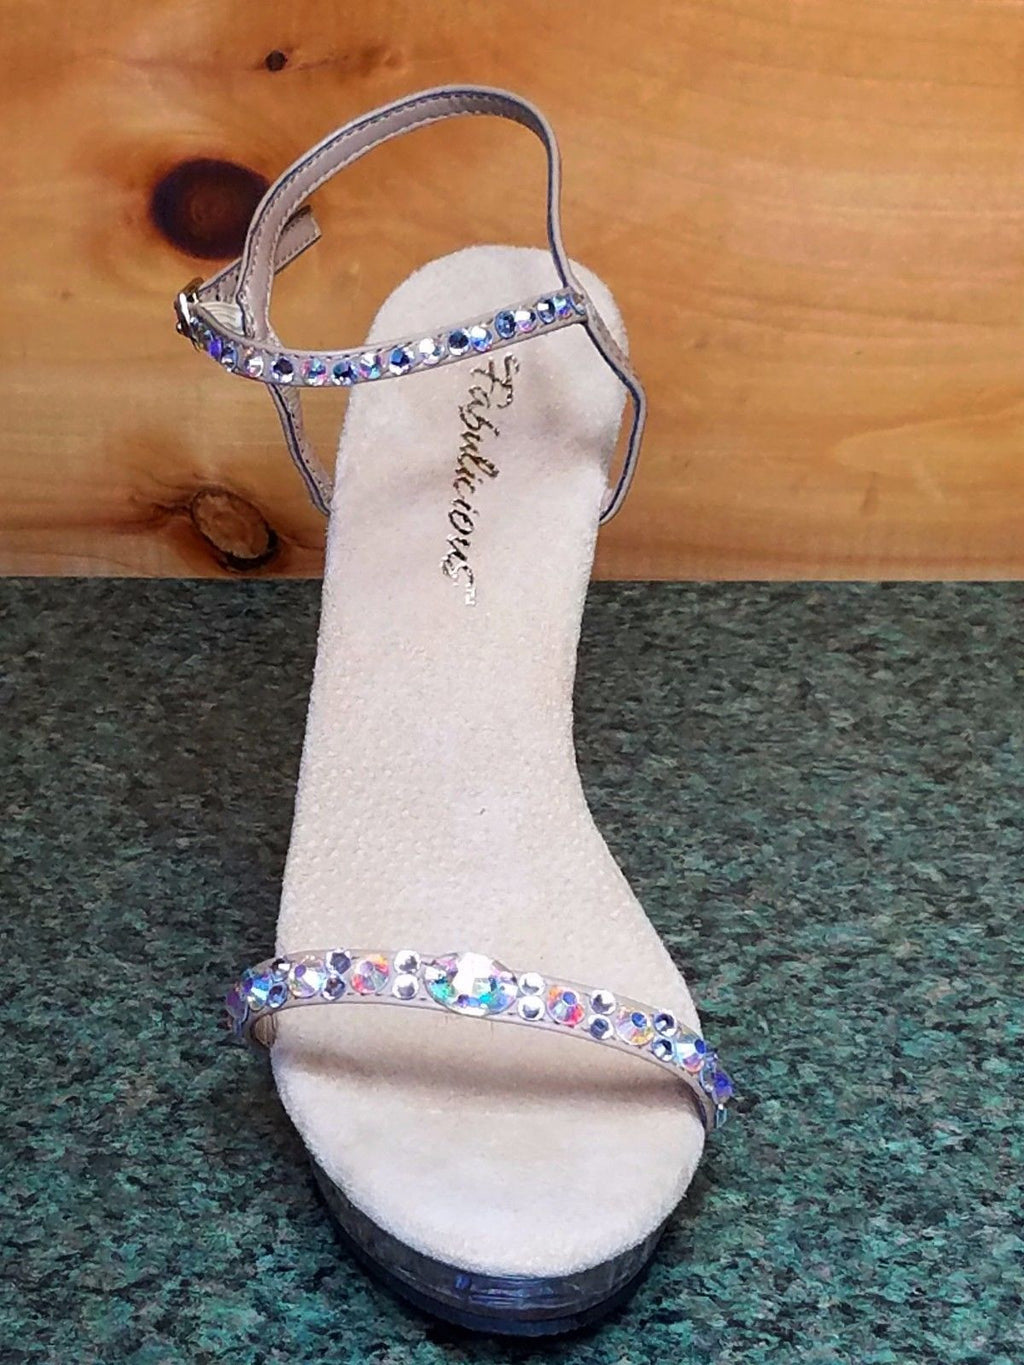 "Lip 131 Taupe Jeweled Strap Clear Platform Evening Sandal 5"" Heel Size 10 & 8 - Totally Wicked Footwear"